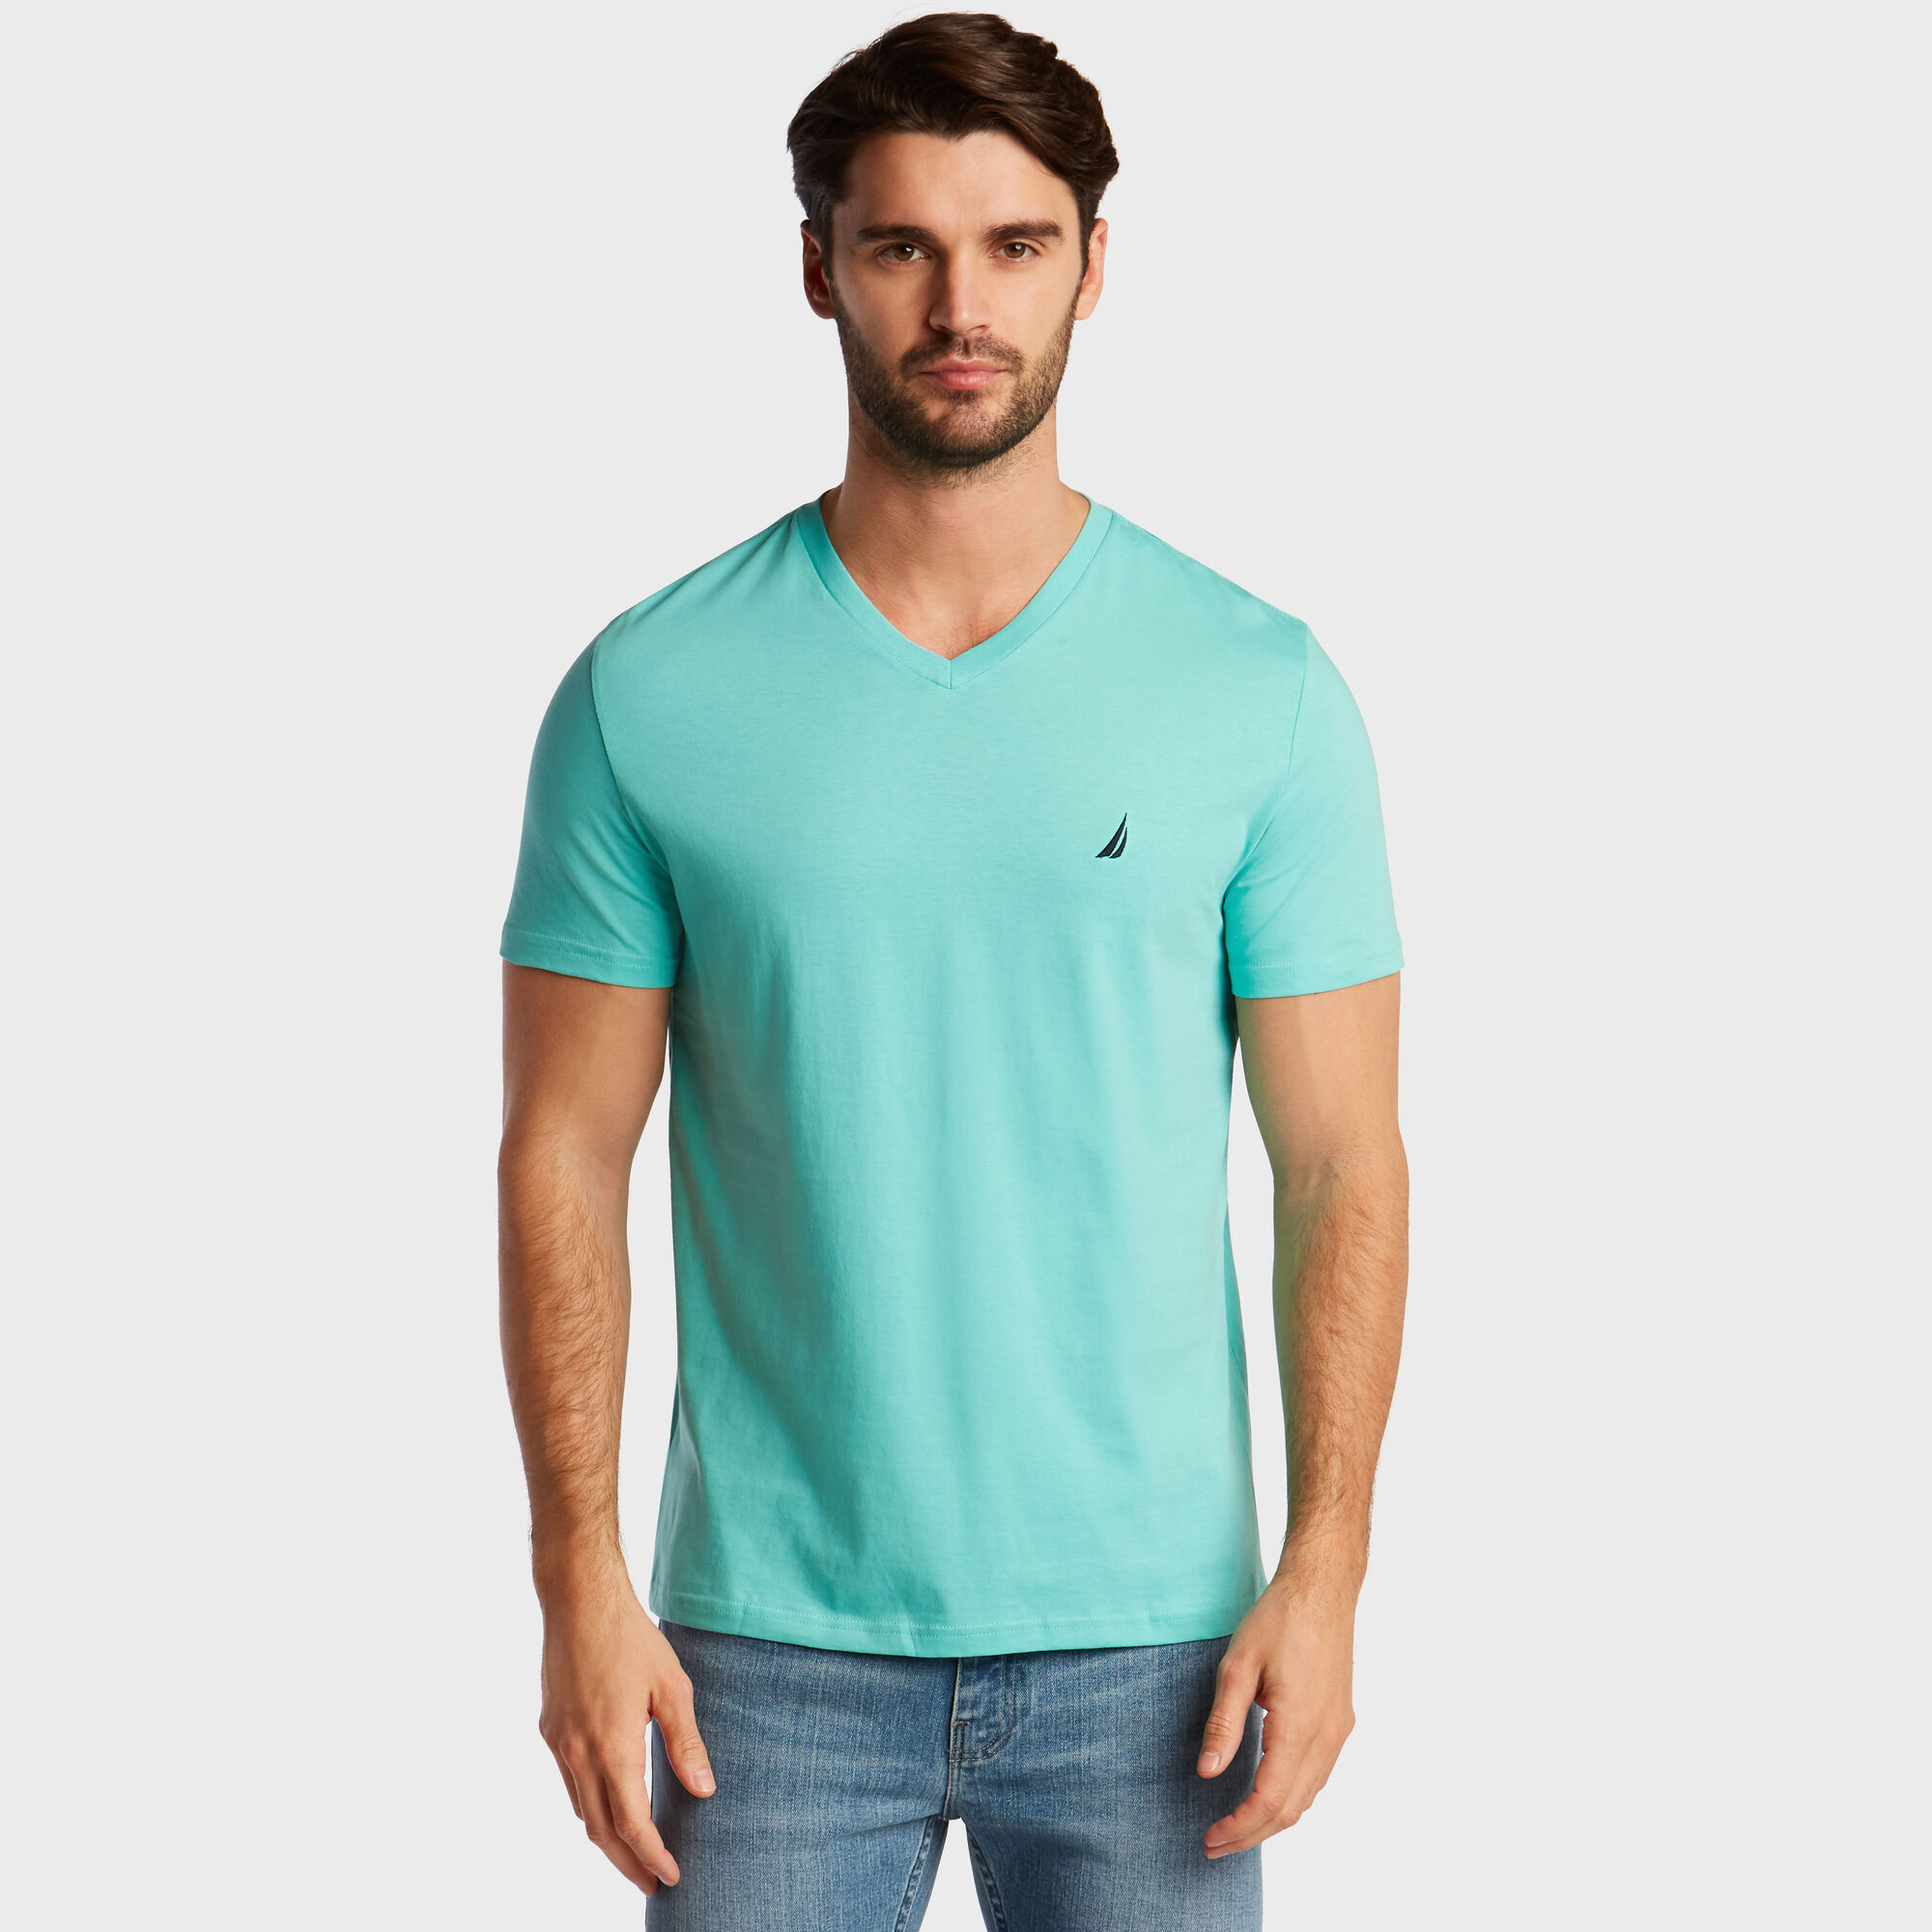 Nautica-Mens-V-Neck-Short-Sleeve-T-Shirt thumbnail 47